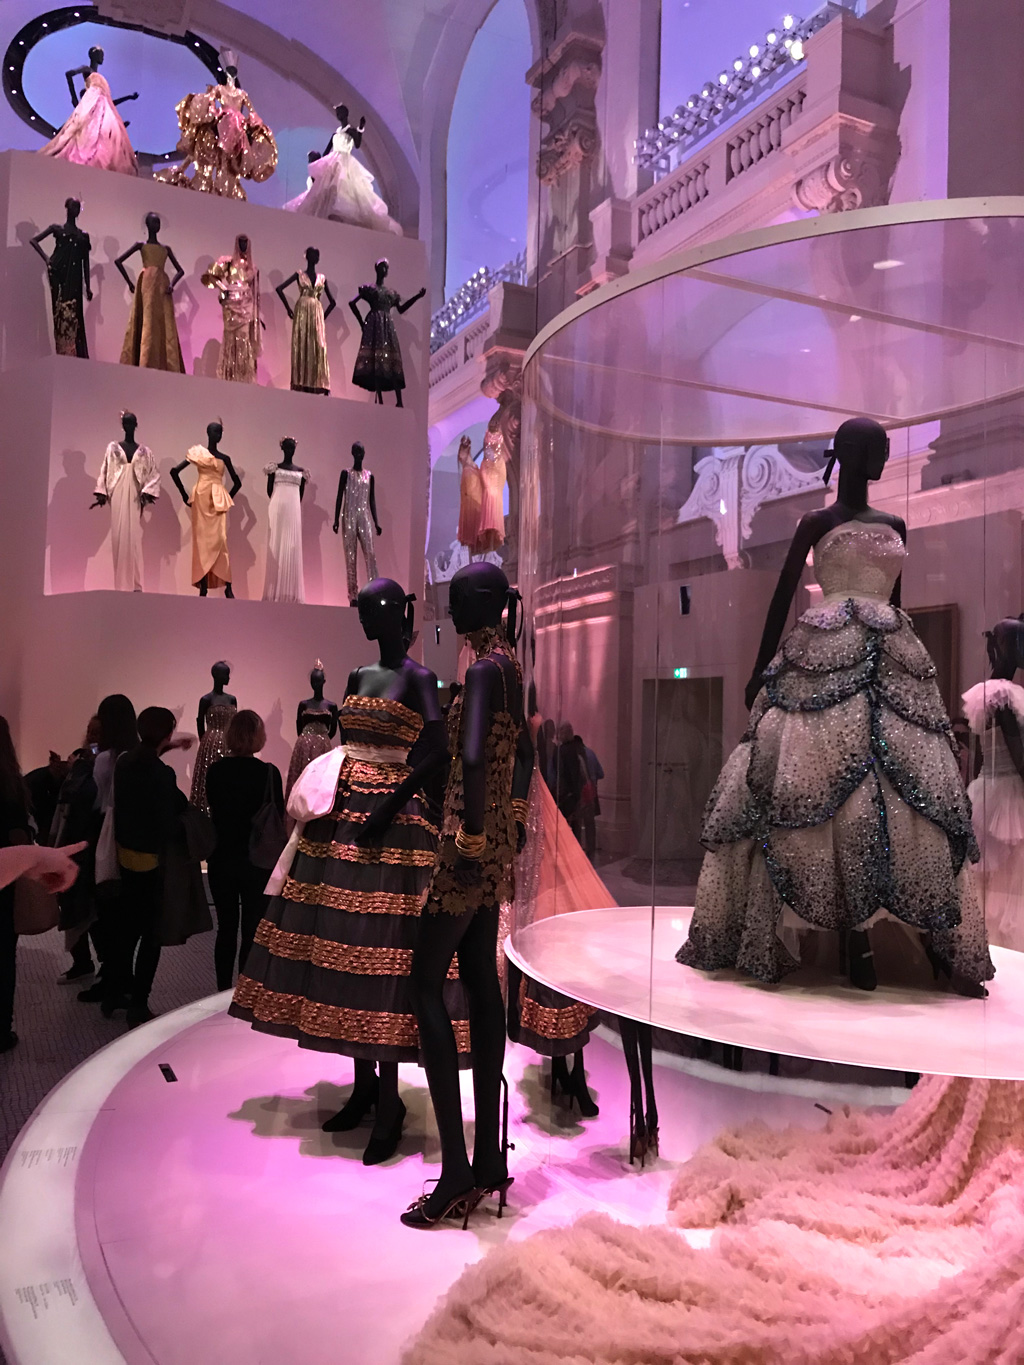 The final and main hall exhibiting Christian Dior dresses in the ultimate display of French fashion.